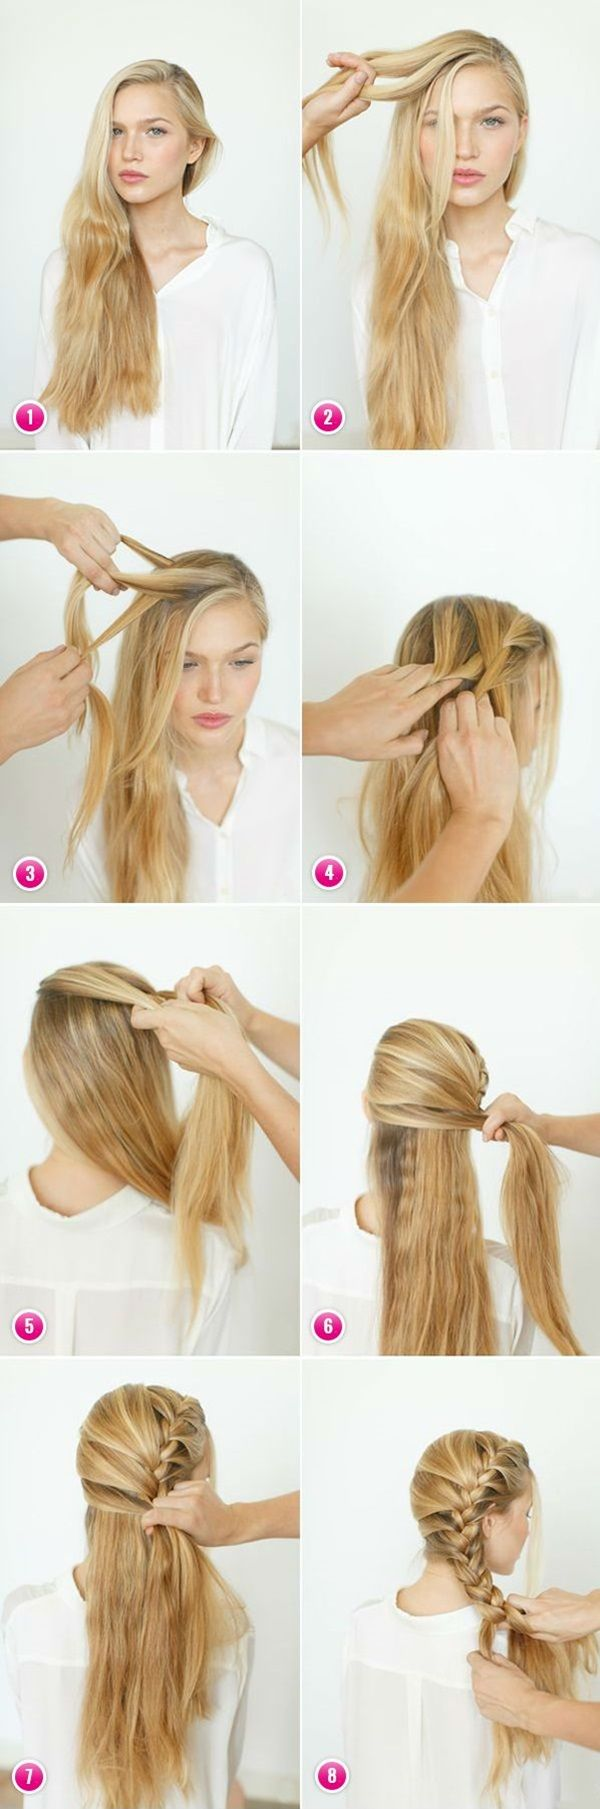 Best 25 Fast hairstyles ideas only on Pinterest Fast